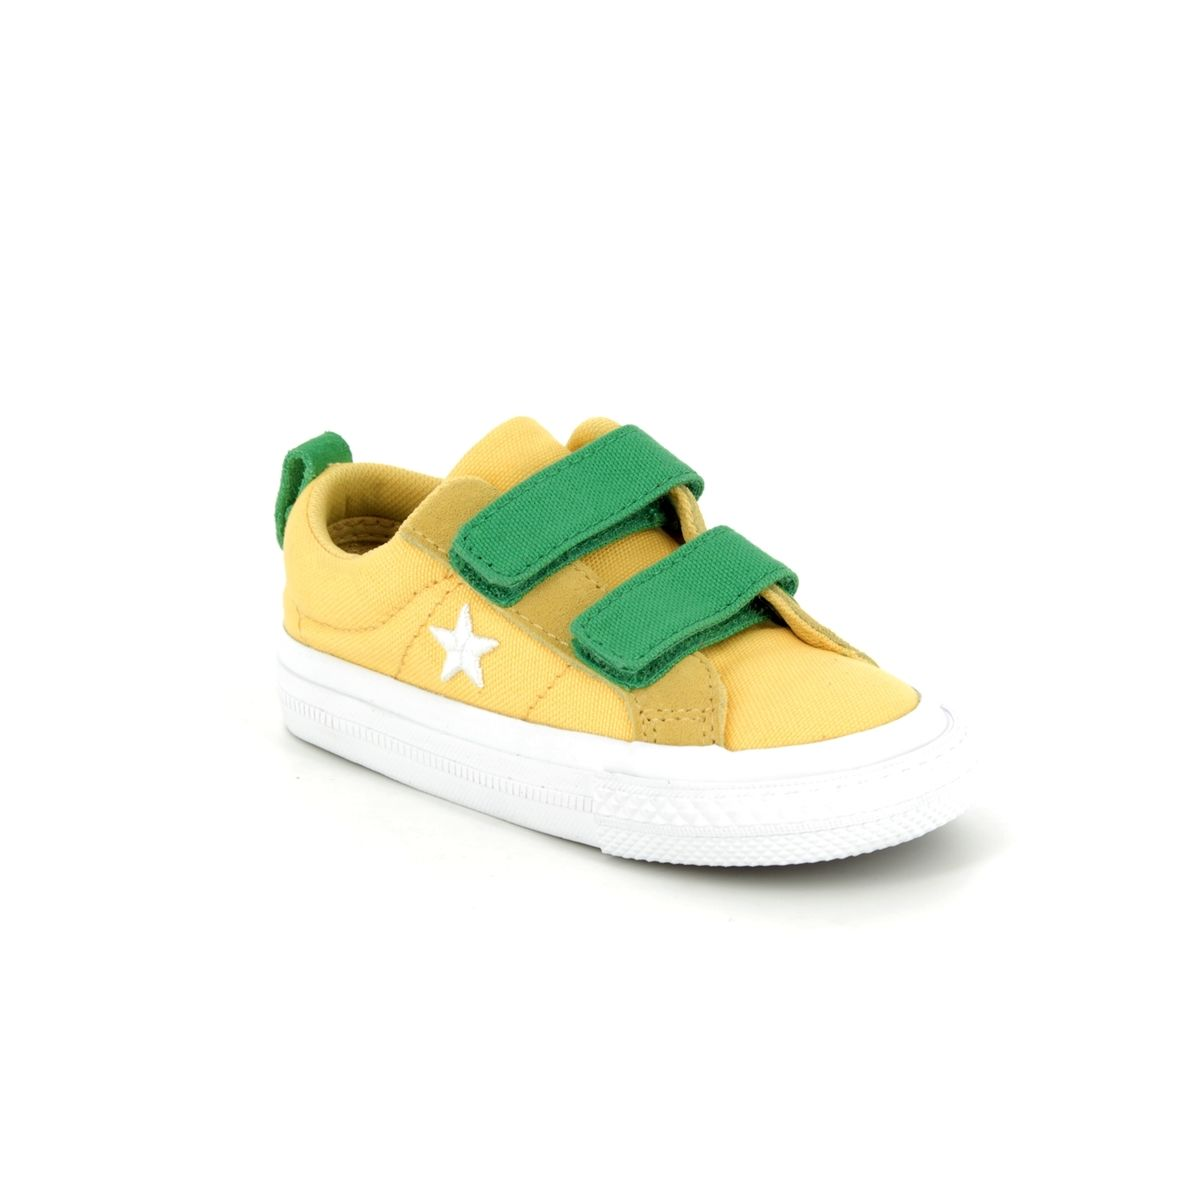 4a7c6773659d Converse One Star Ox 2V 760764C Yellow Green Combi Velro Kids Trainers